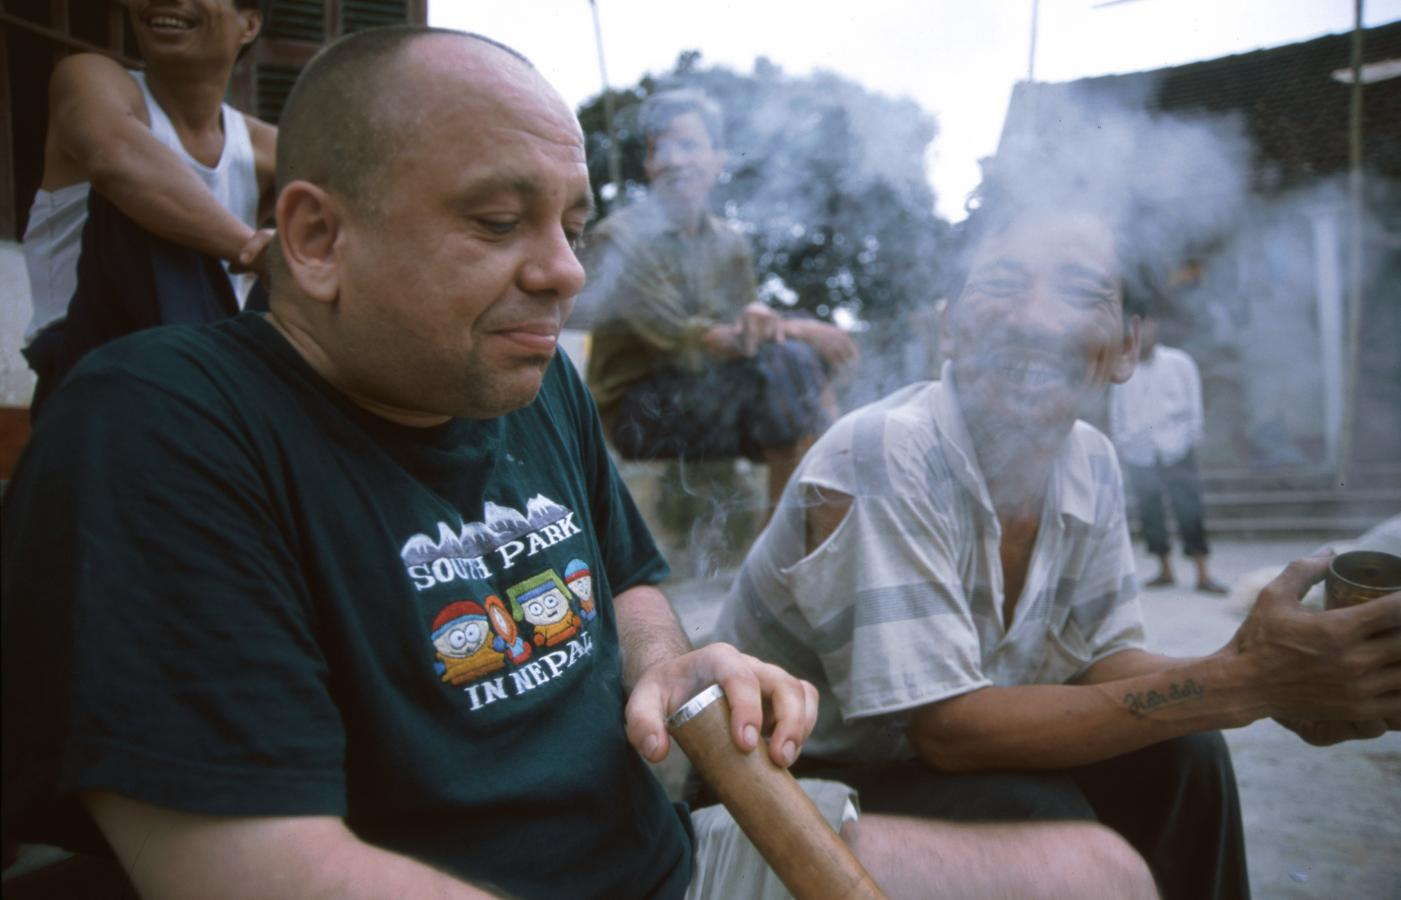 smoking-strong-tabacco-at-6-am, Vietnam, 2002